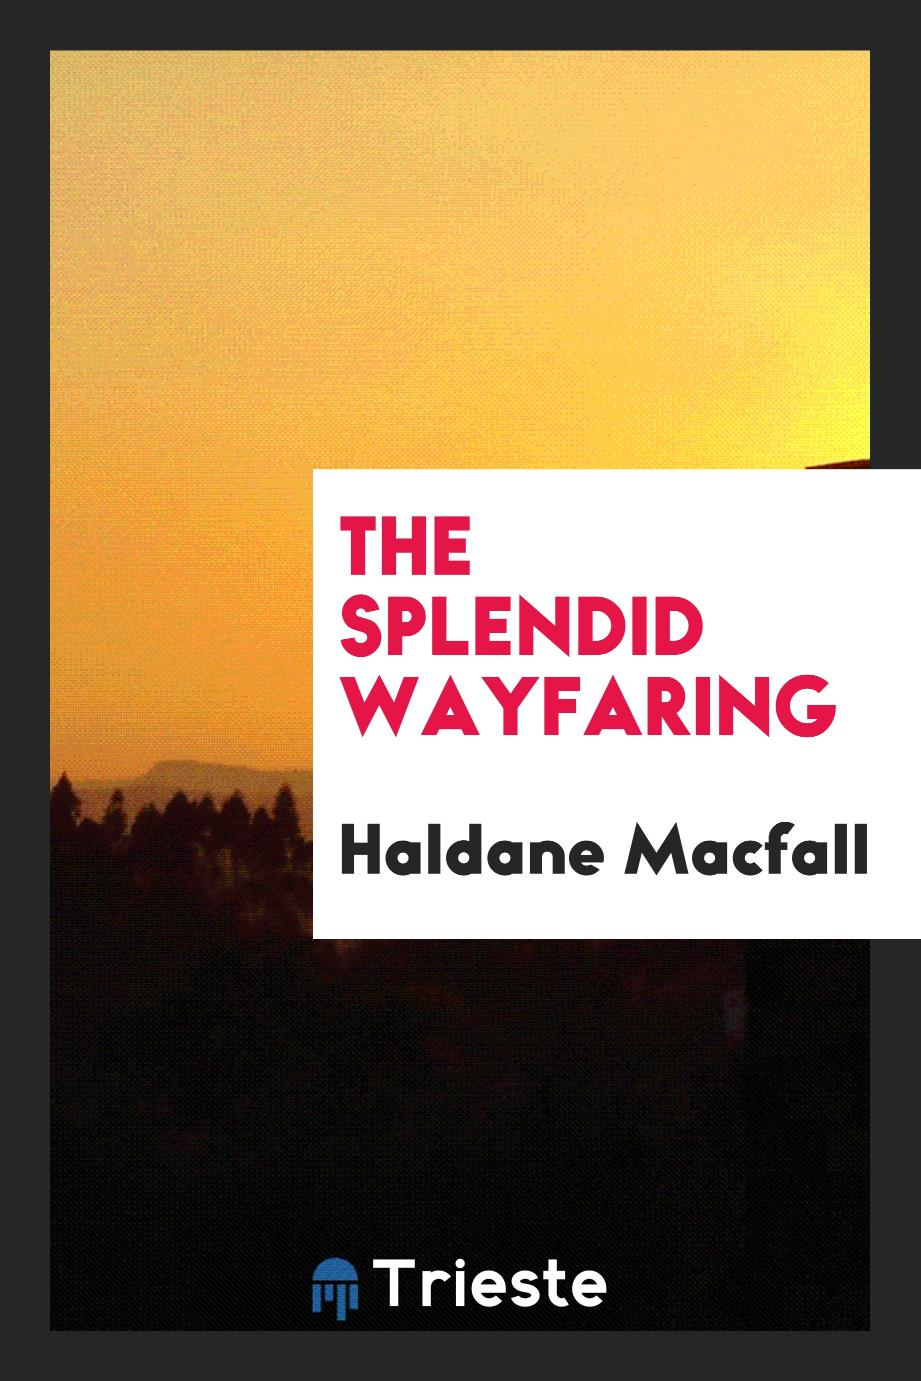 Haldane Macfall - The splendid wayfaring